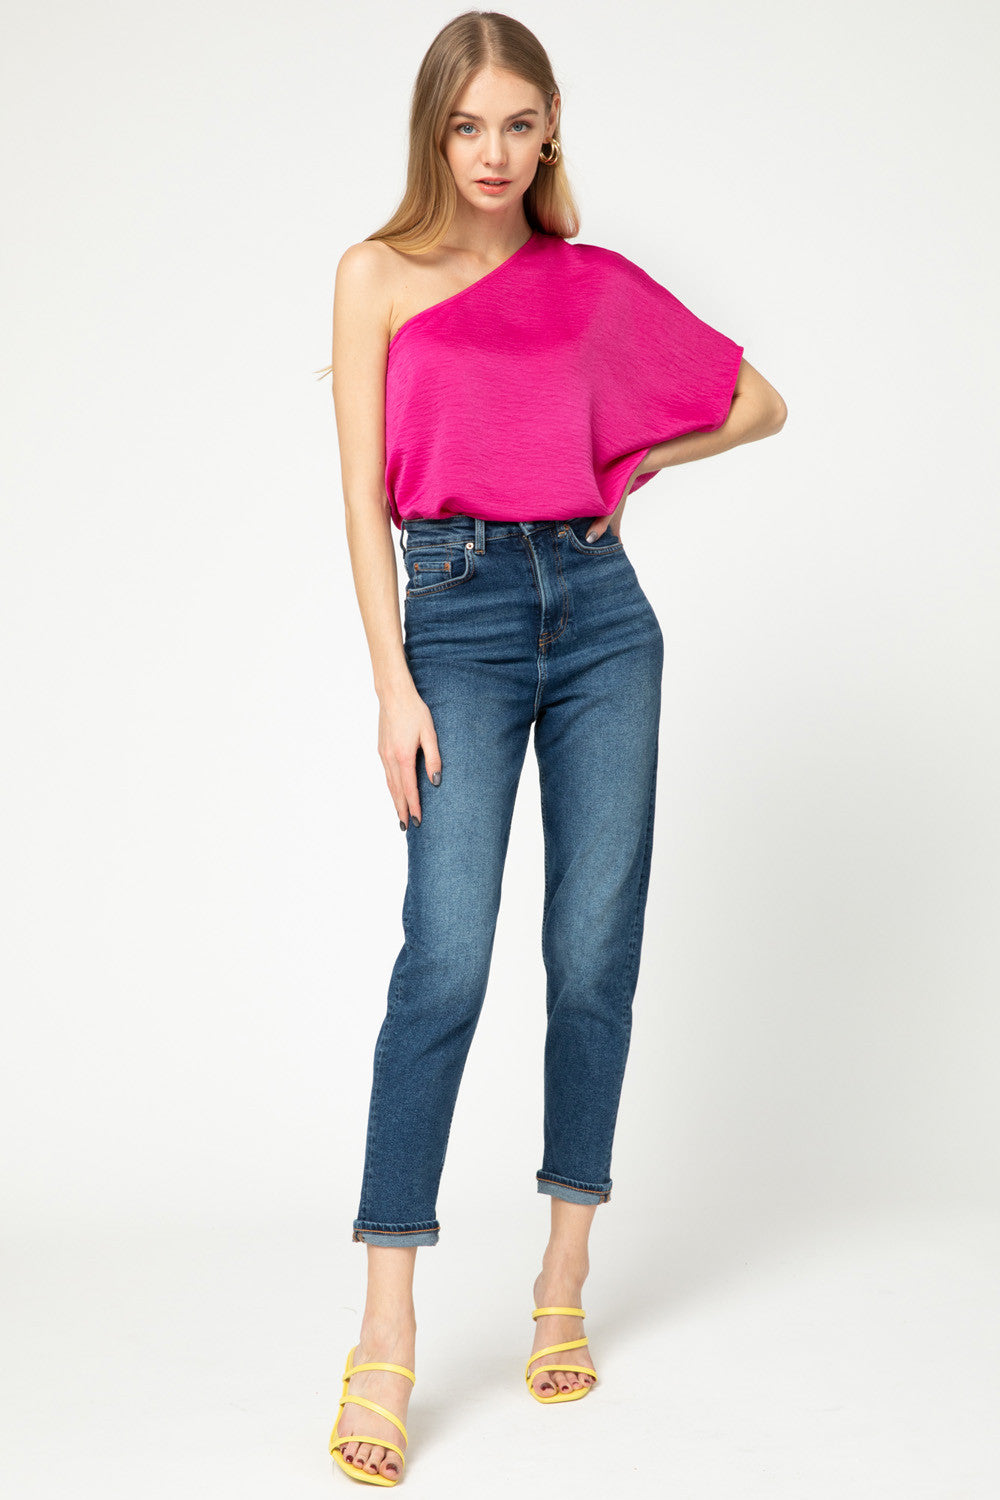 Fuchsia One Shoulder Top